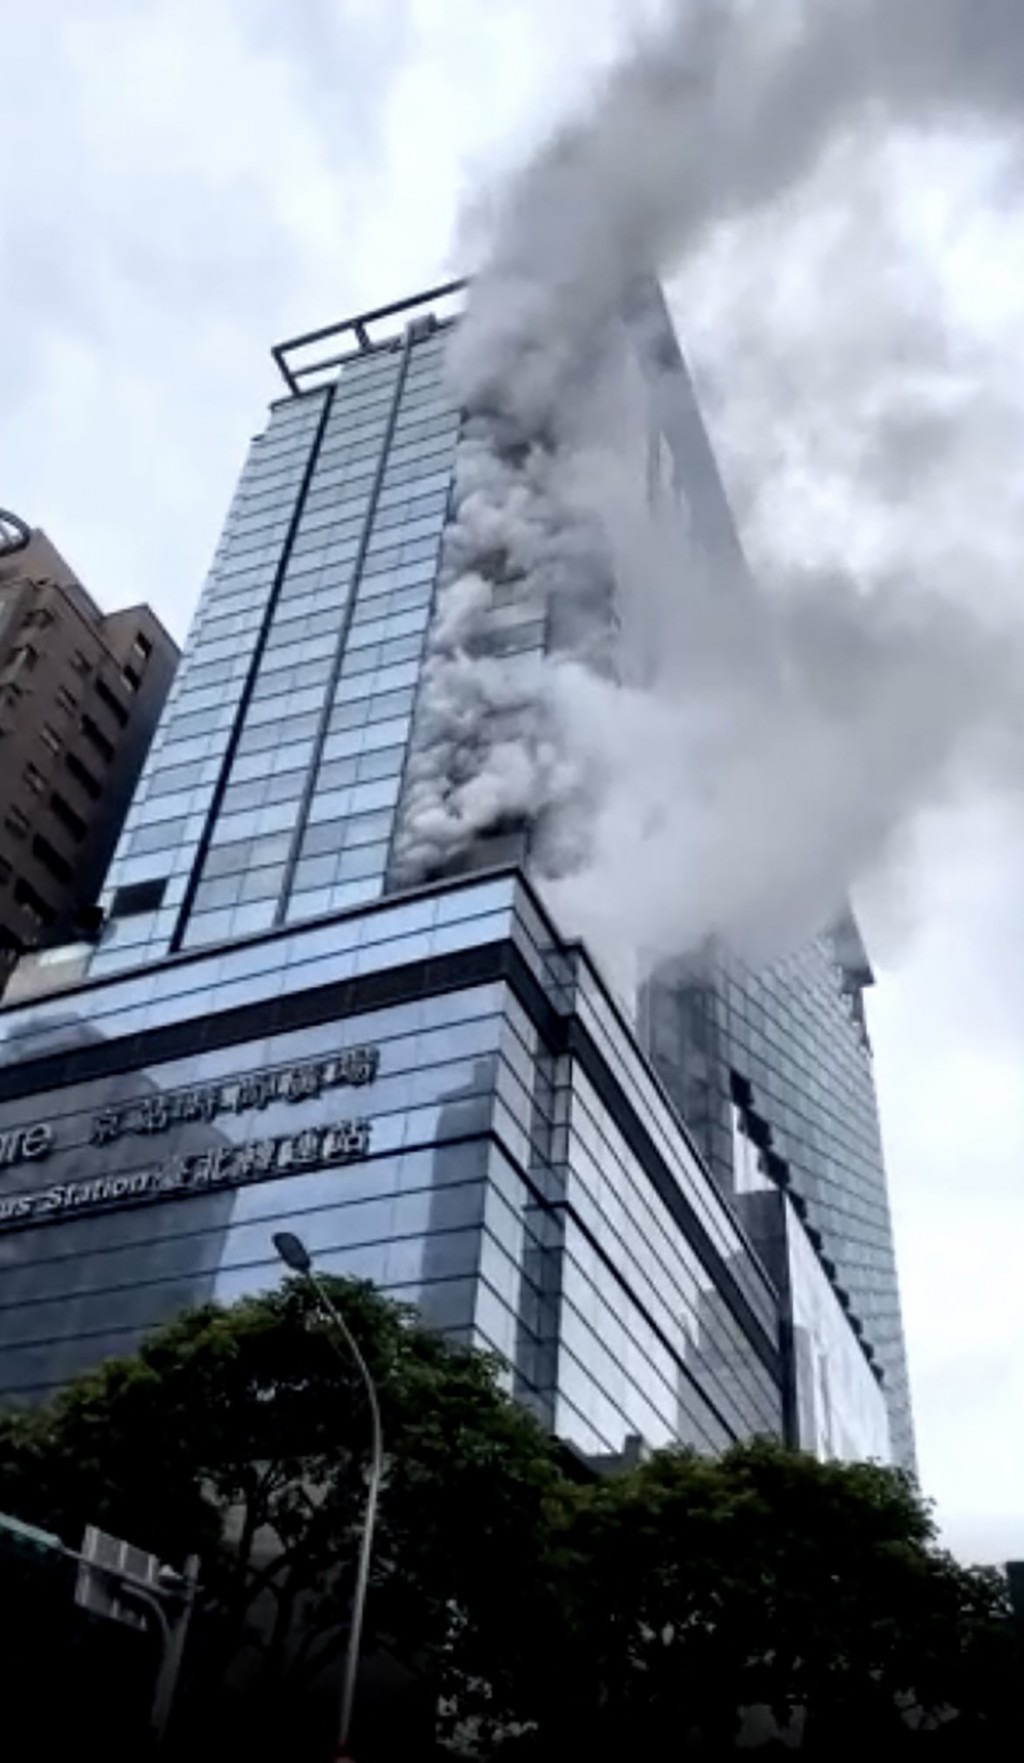 Fire breaks out in Taipei's Palais de Chine Hotel